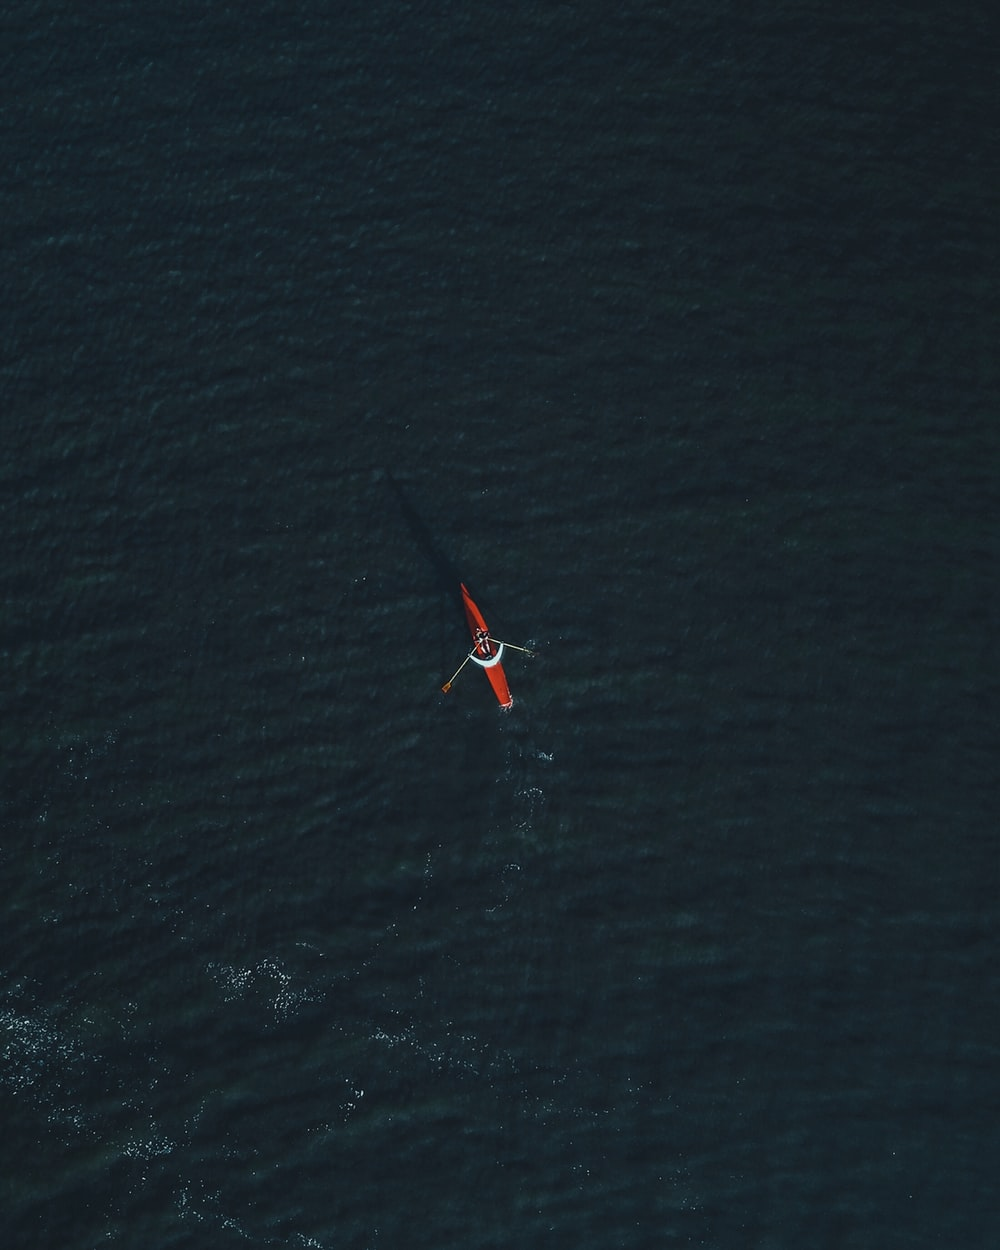 aerial photography of person riding on kayak during daytime